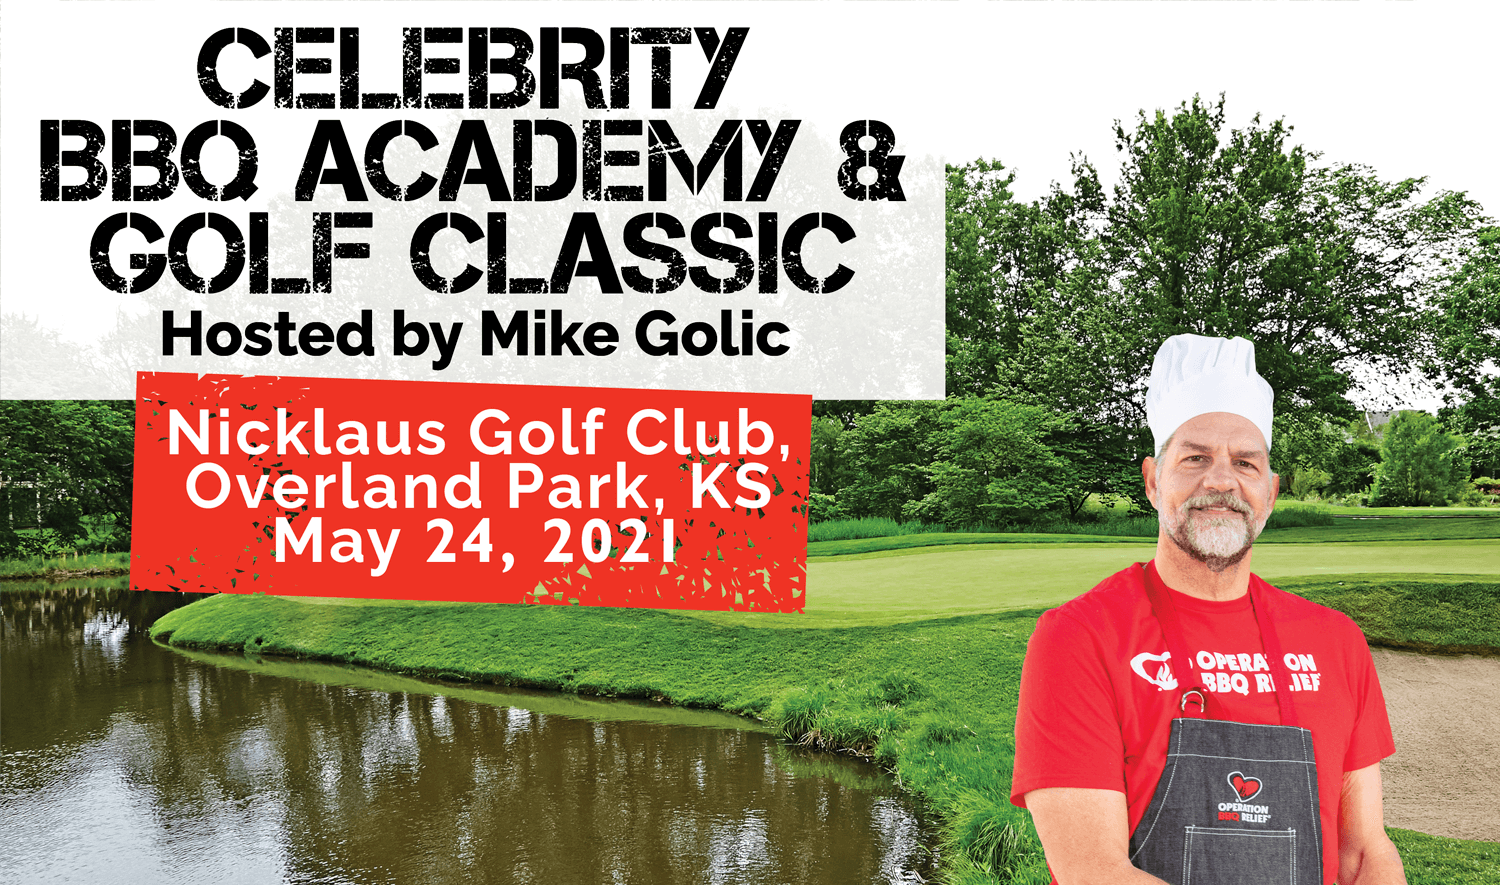 Operation BBQ Relief Celebrity BBQ Academy & Golf Classic - May 24, 2021